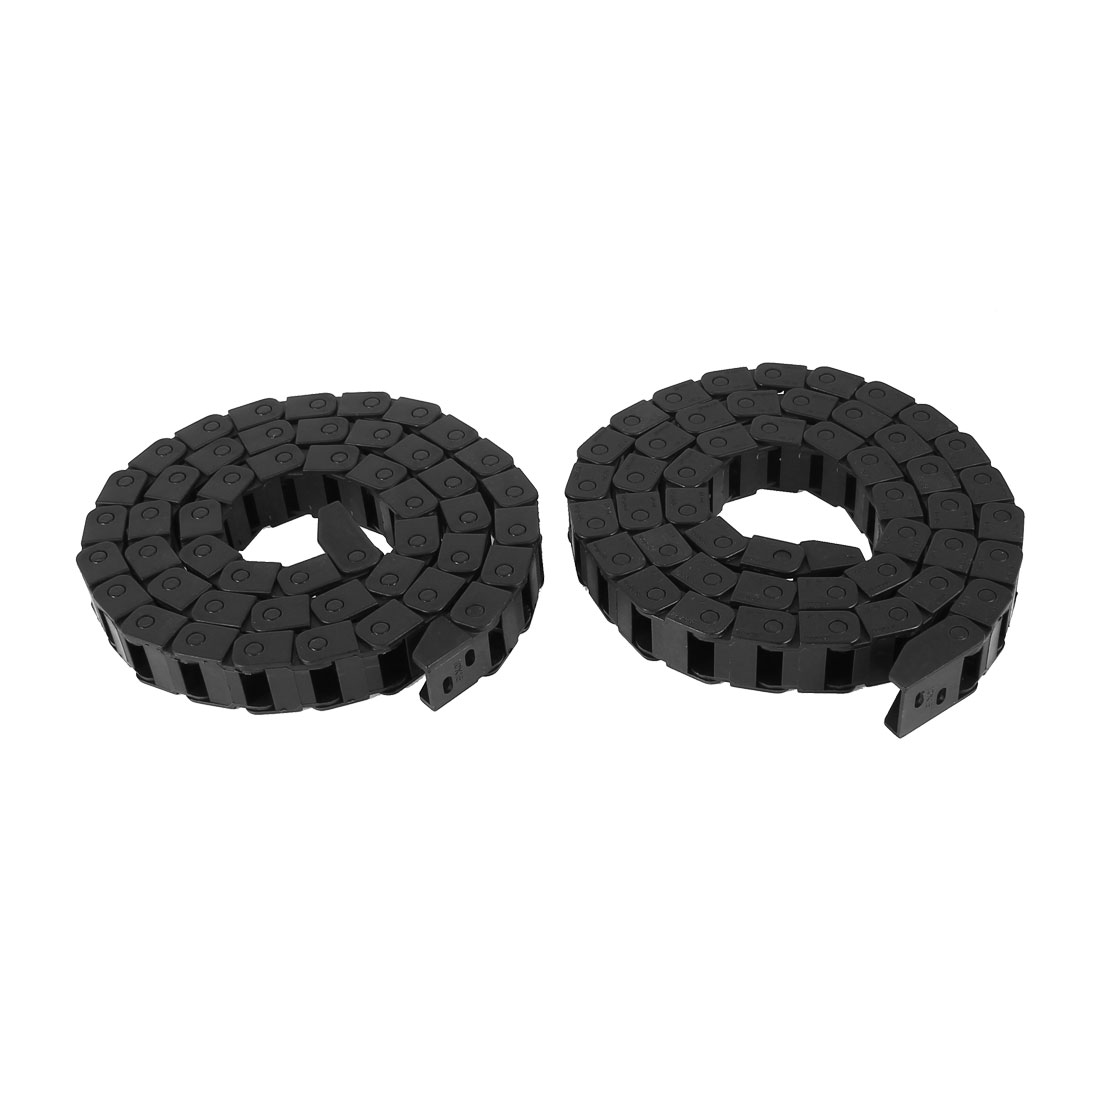 2 Pcs Black Plastic Drag Chain Cable Carrier 10 x 15mm for CNC Router Mill